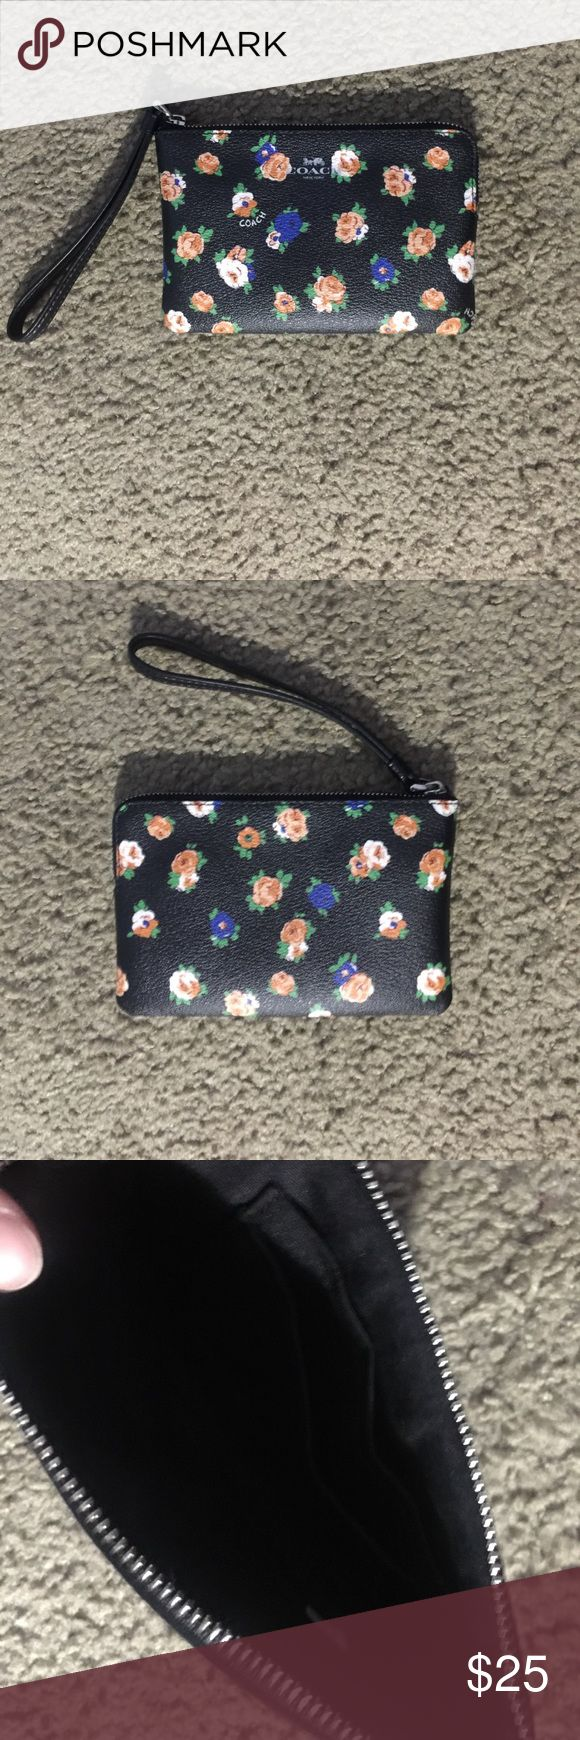 Coach floral wristlet Used. Great condition! Coach floral wristlet. Has 2 card compartments on one side. Coach Bags Clutches & Wristlets